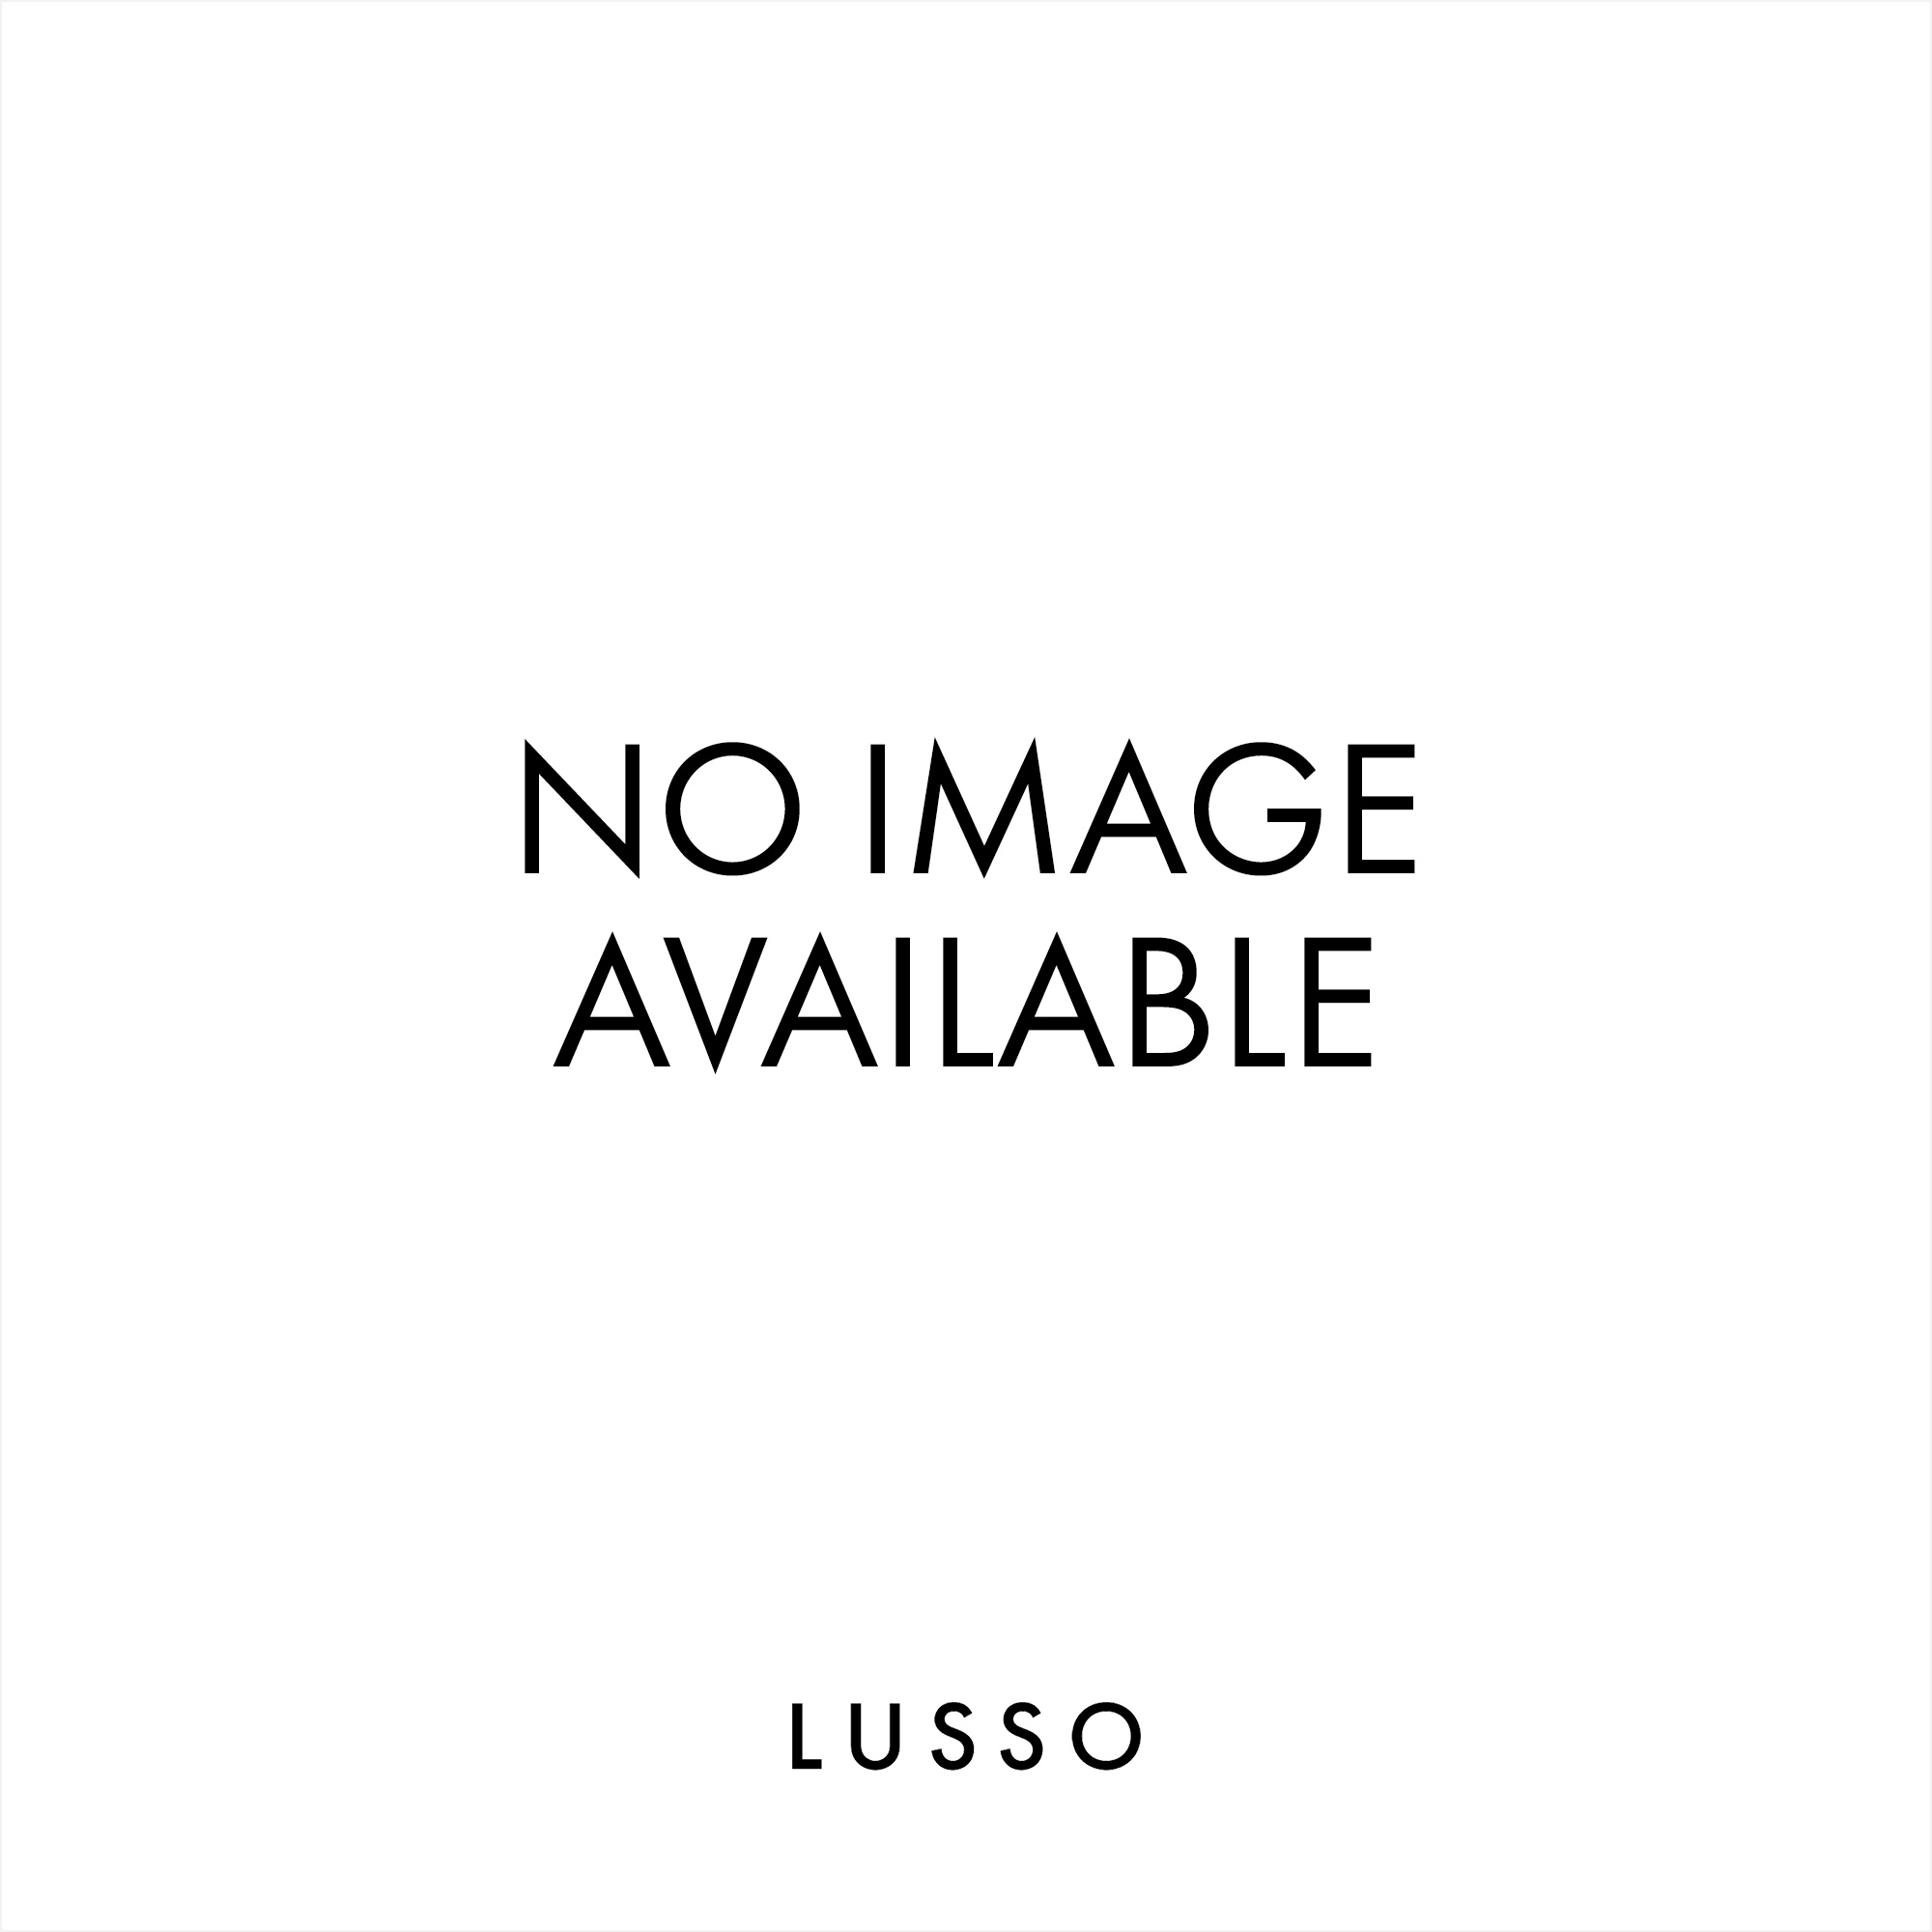 Lusso Stone Ethos Stone Resin Counter Top Wall Hung Basin 500